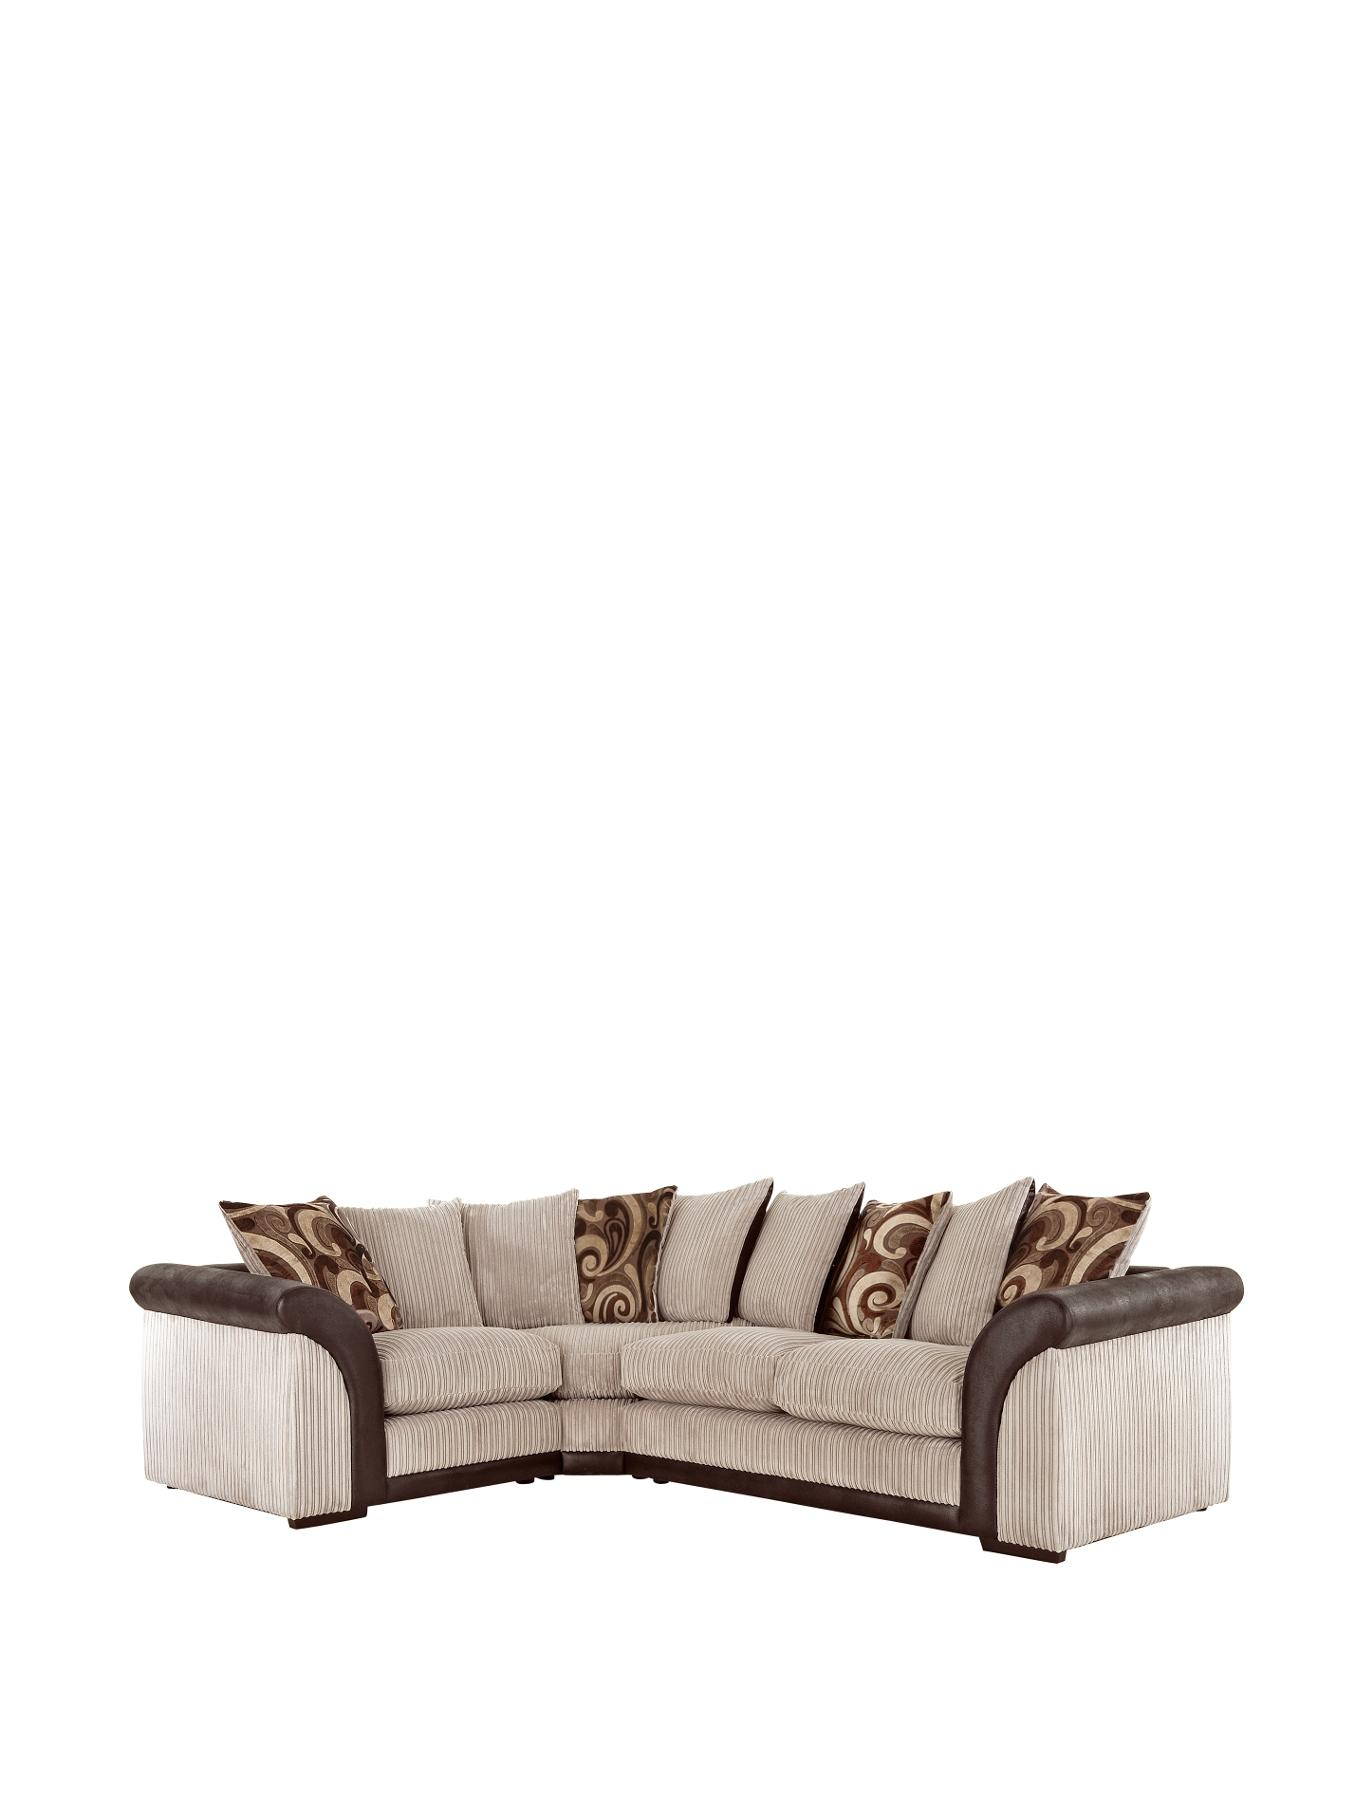 Chicago Left Hand Corner Group with Sofa Bed BlackChocolate